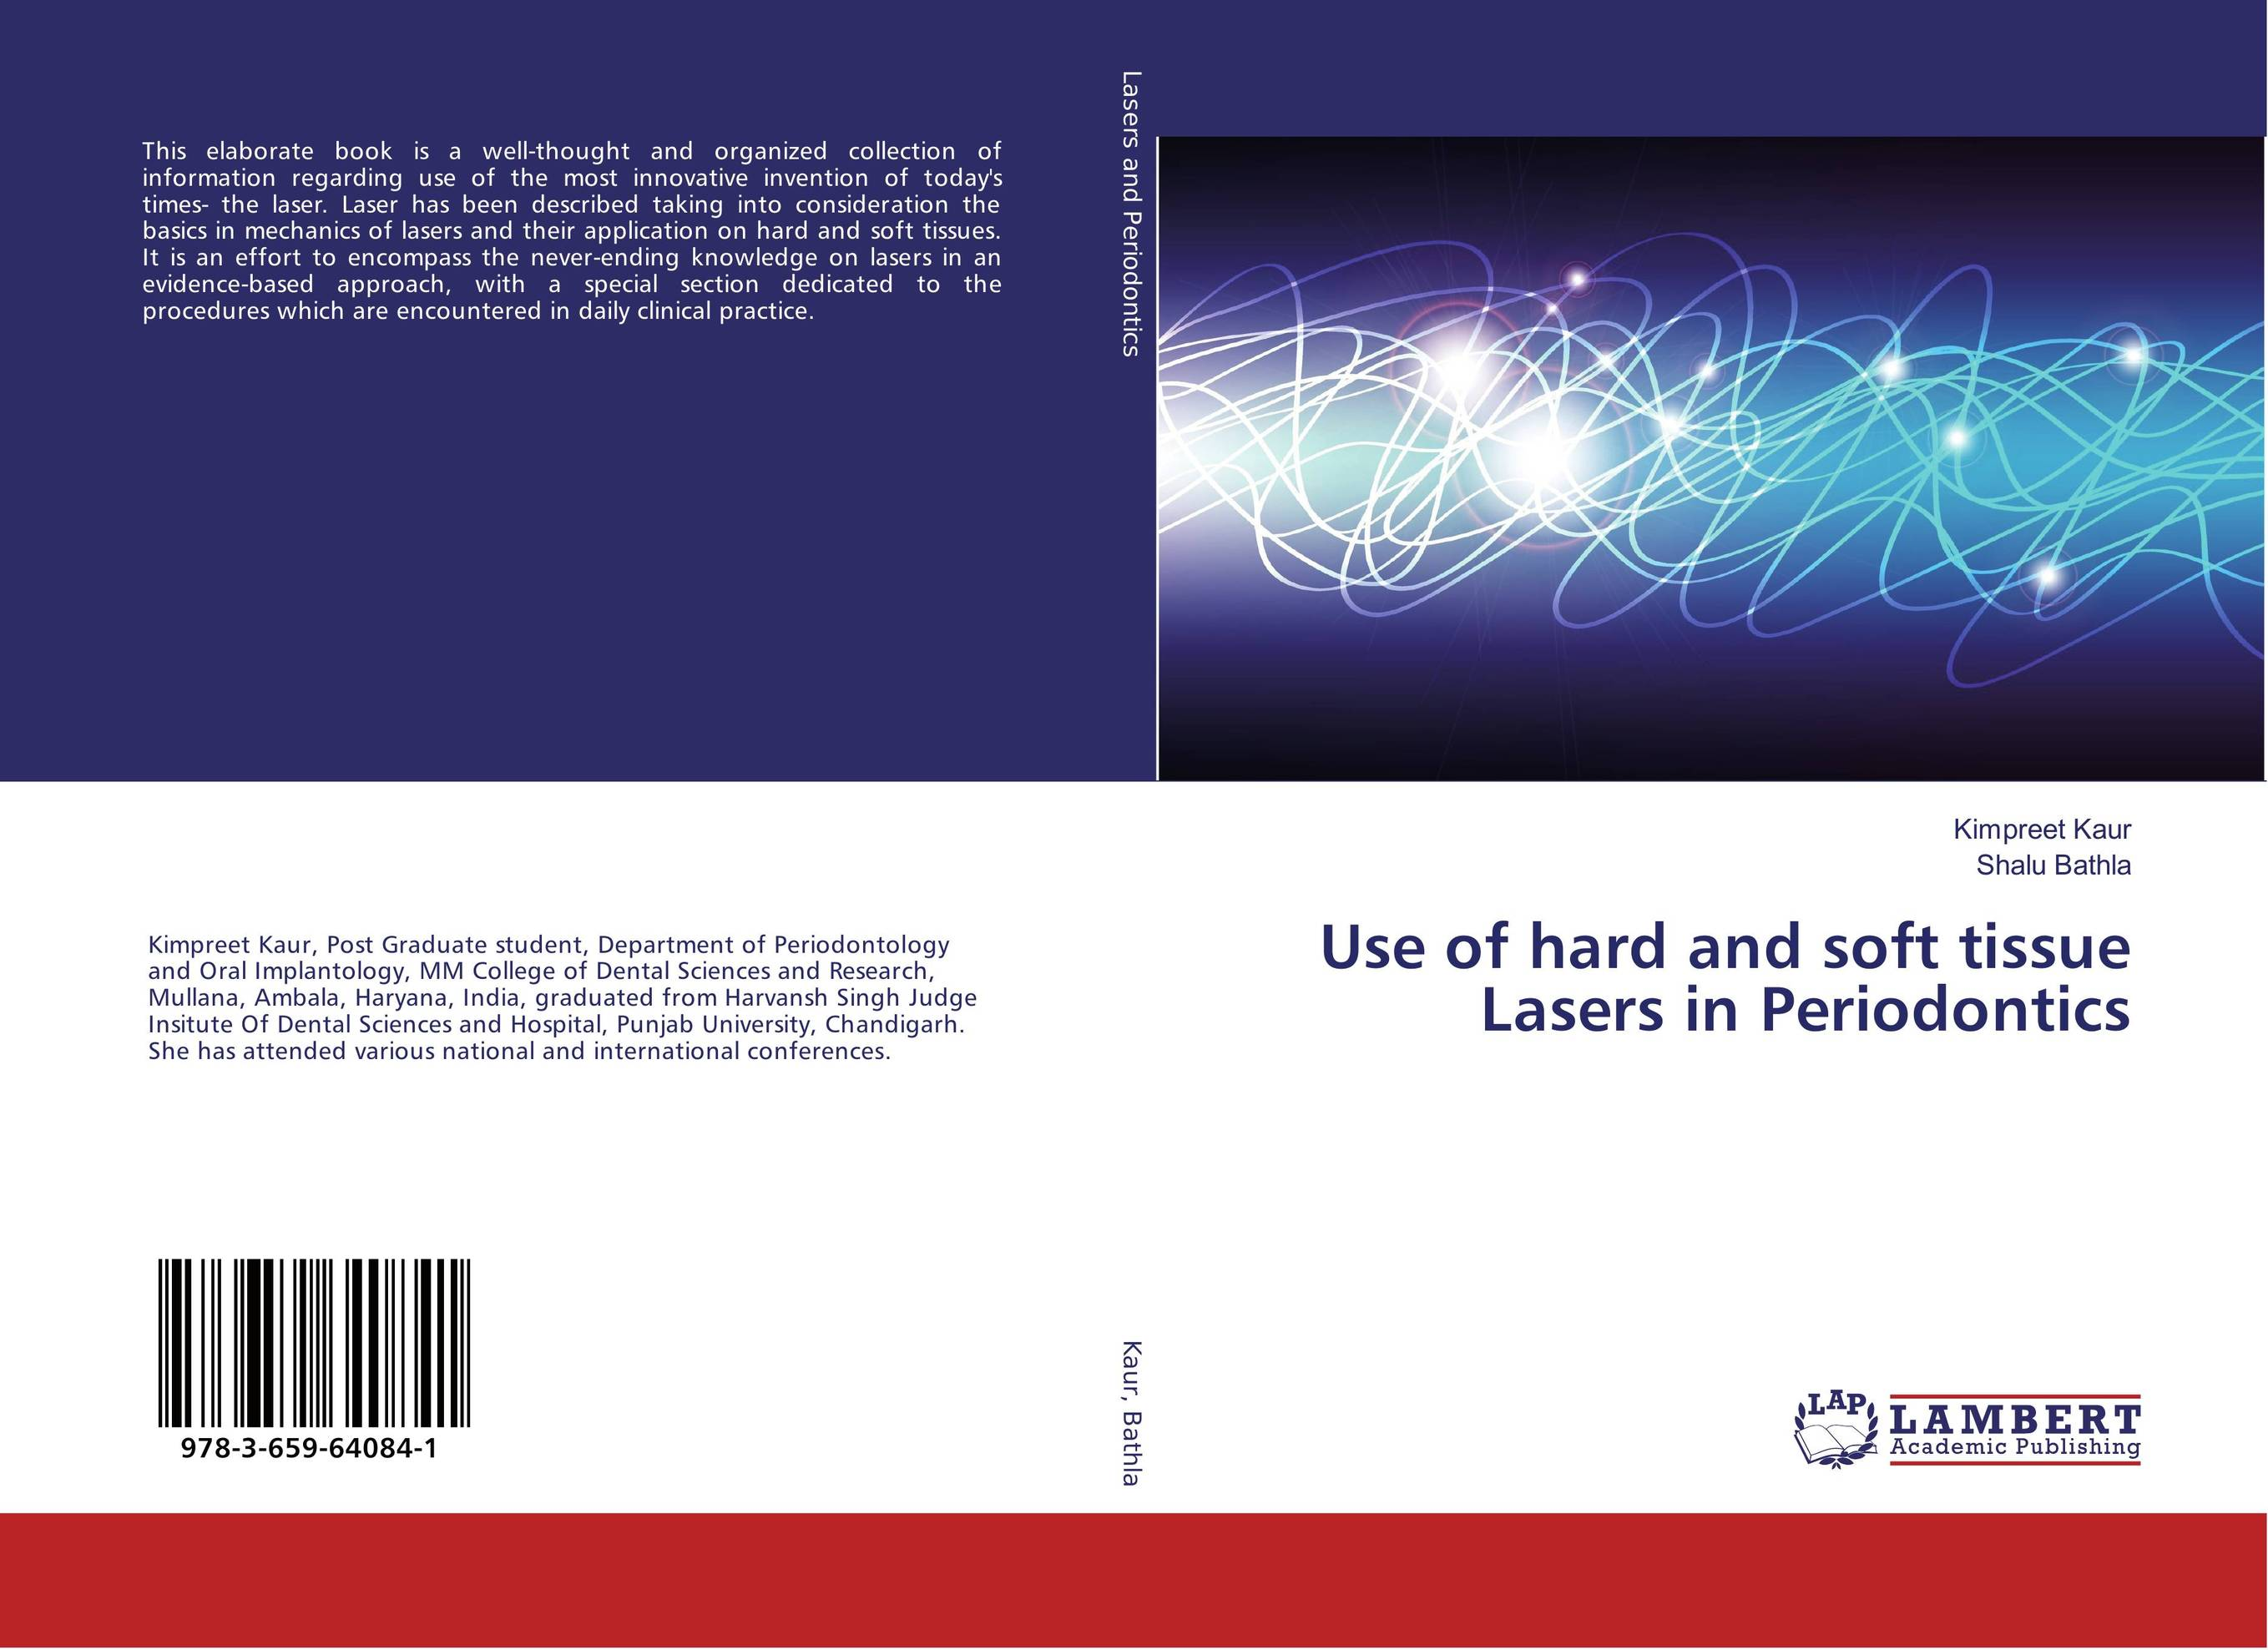 Use of hard and soft tissue Lasers in Periodontics soft laser healthy natural product pain relief system home lasers